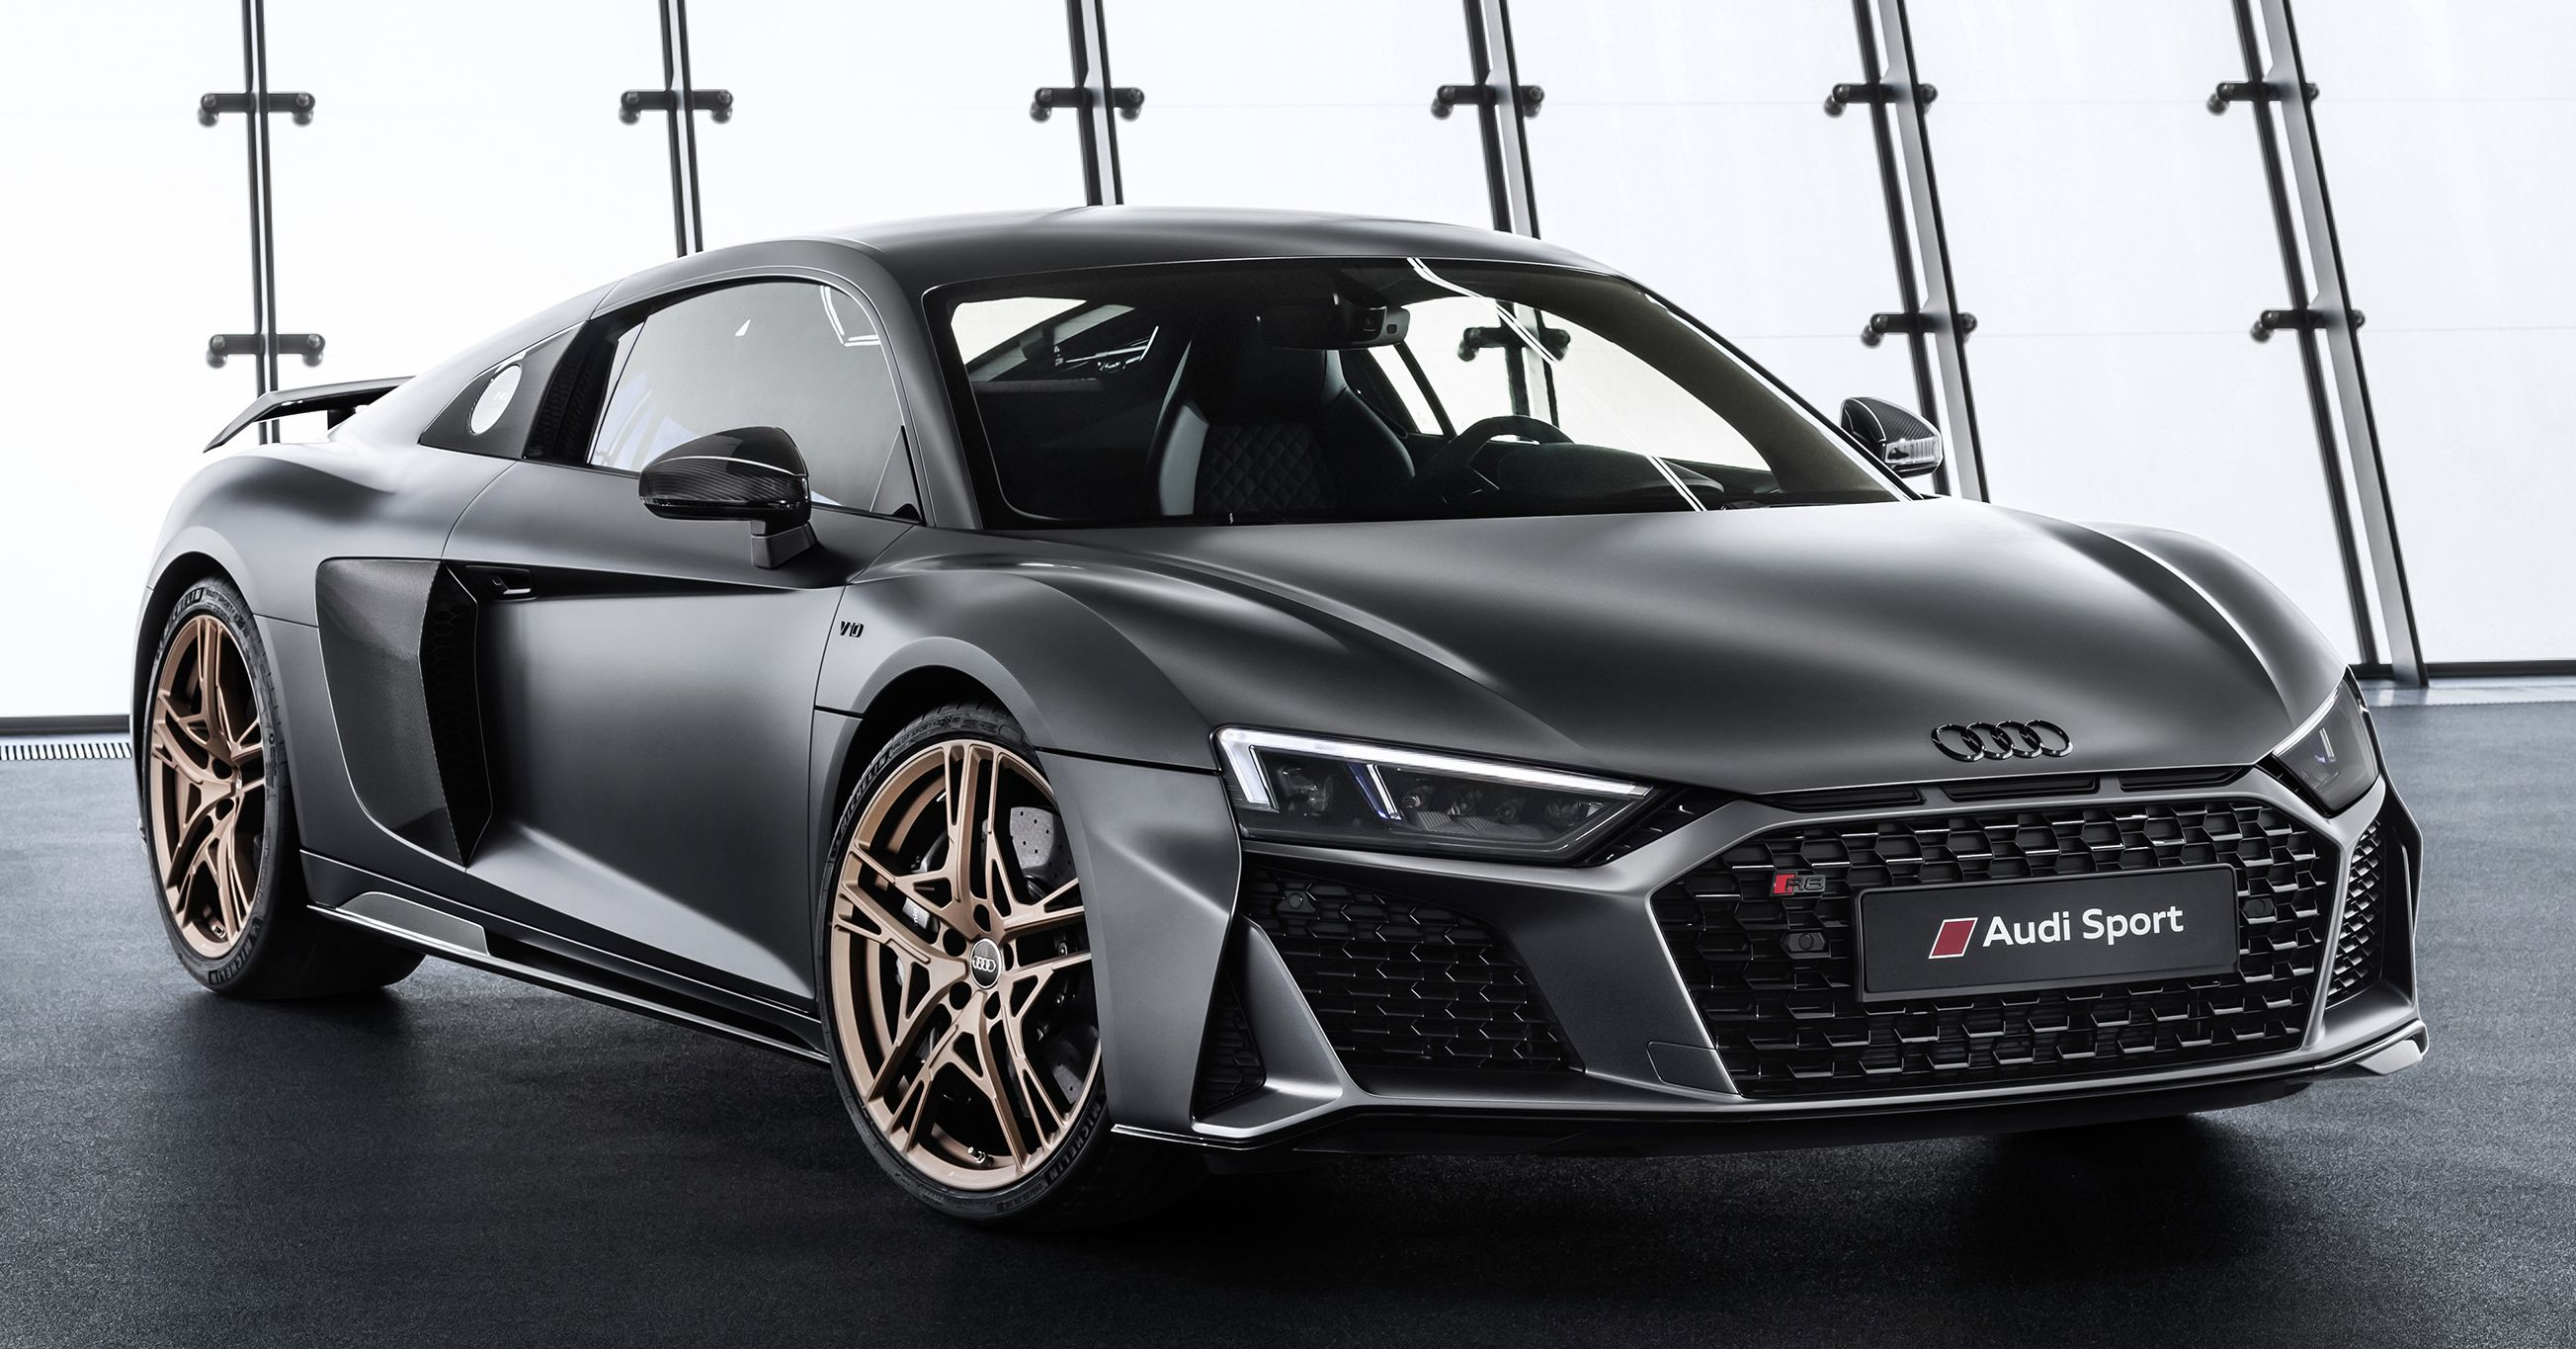 Audi R8 Green Hell Name Trademarked Launch Soon Paultan Org